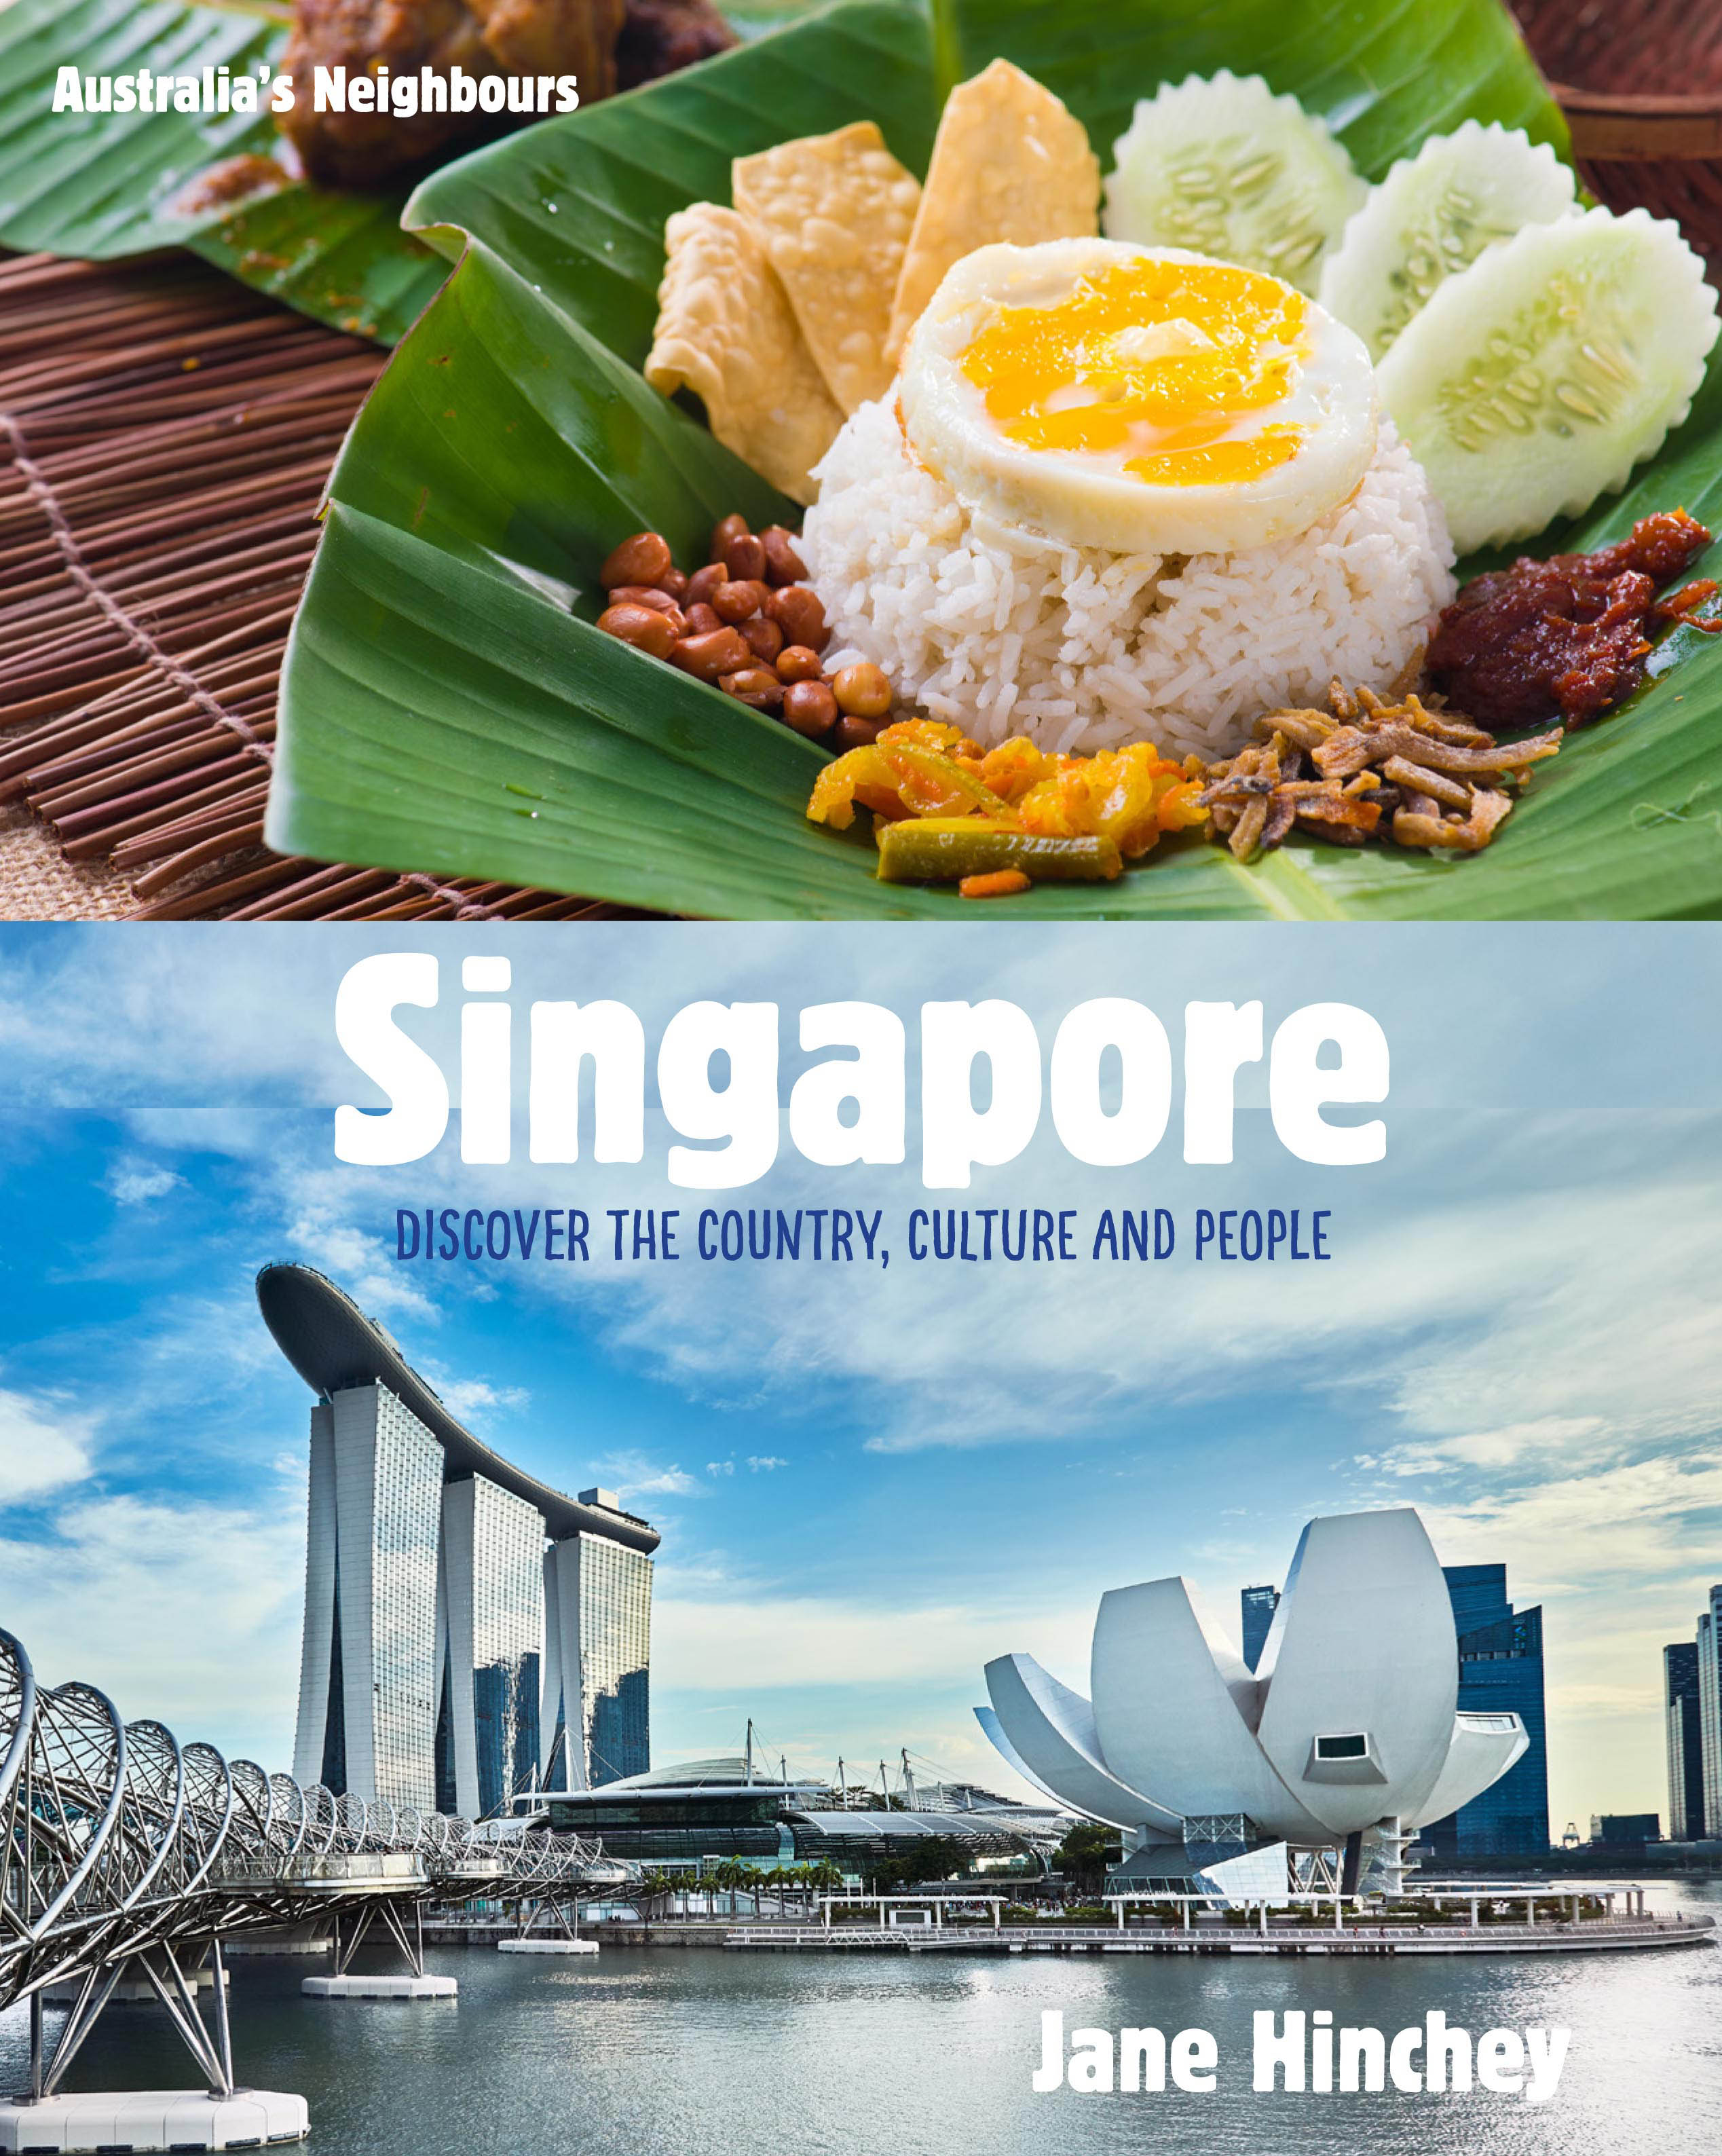 Australia's Neighbours: Singapore